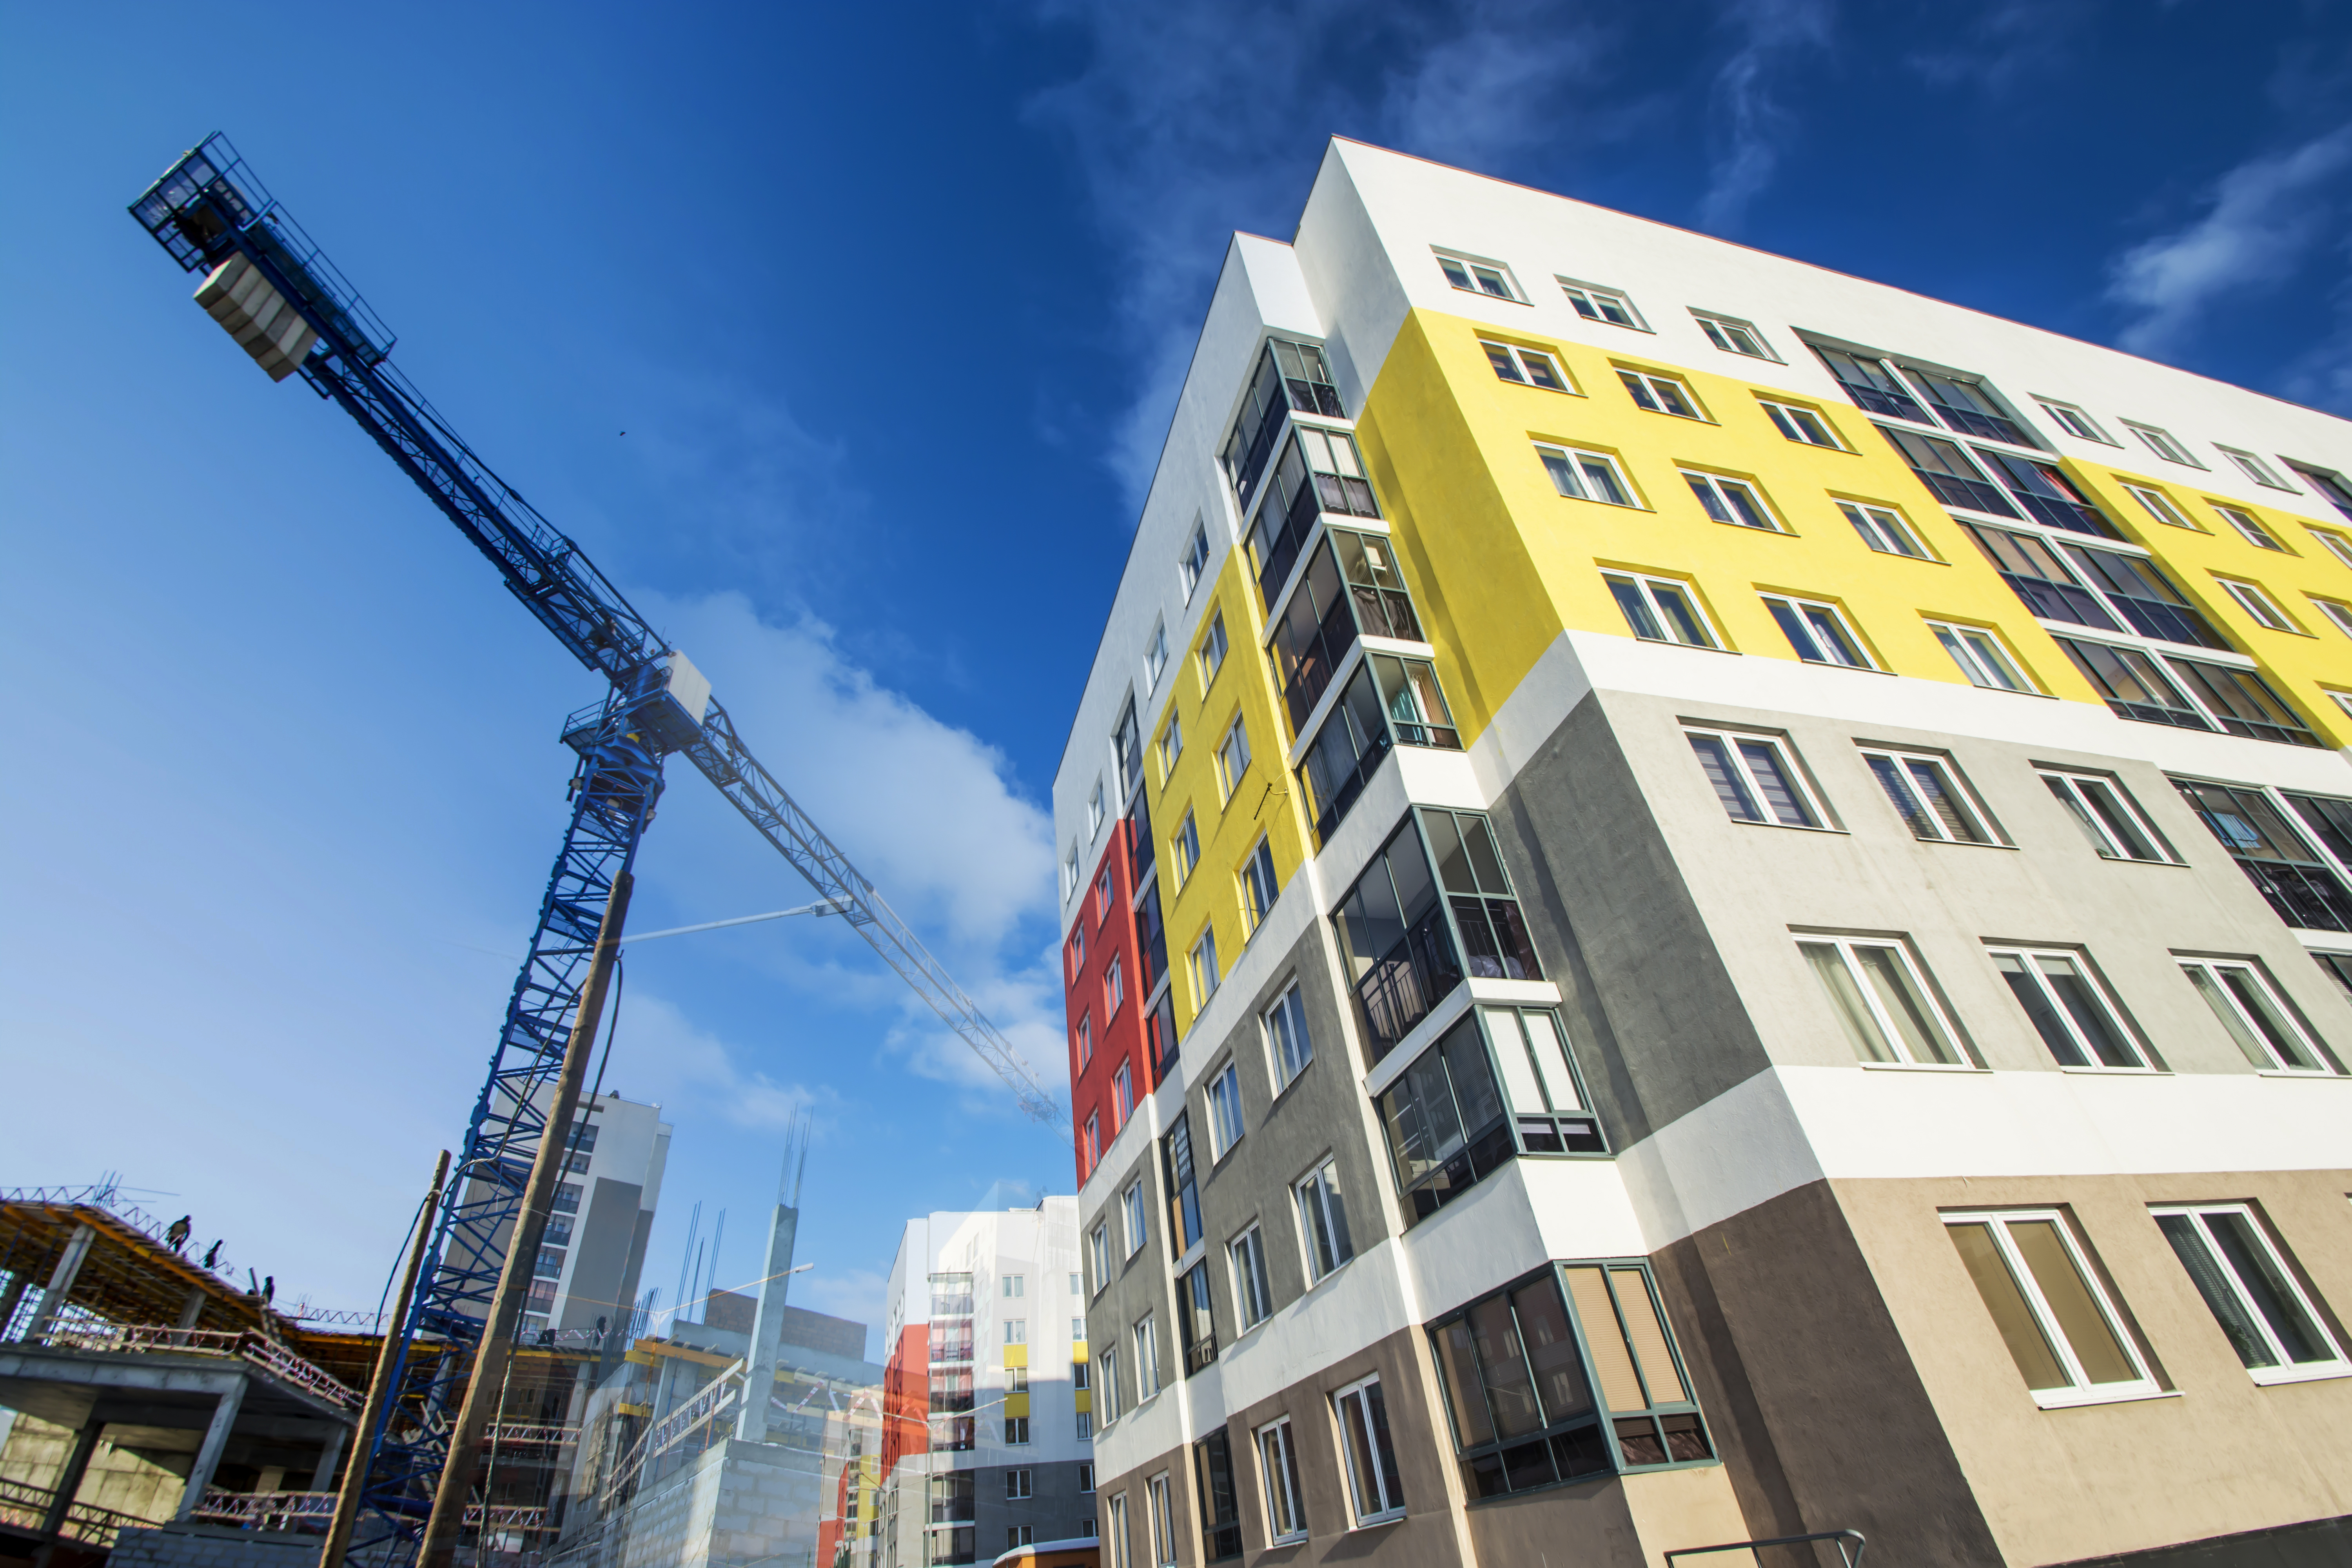 How a re-energized housing movement will shape the 2020 election